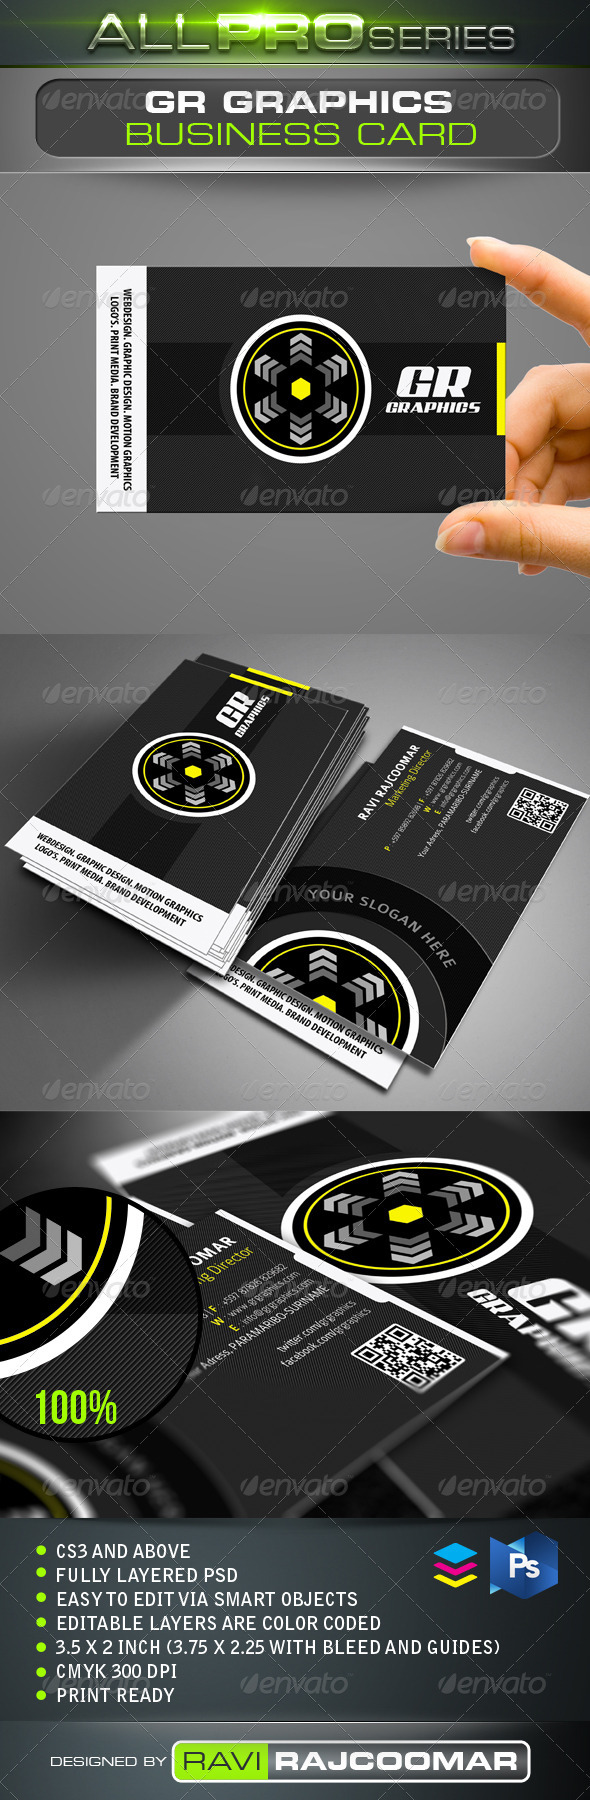 GR Graphics Business Card - Creative Business Cards